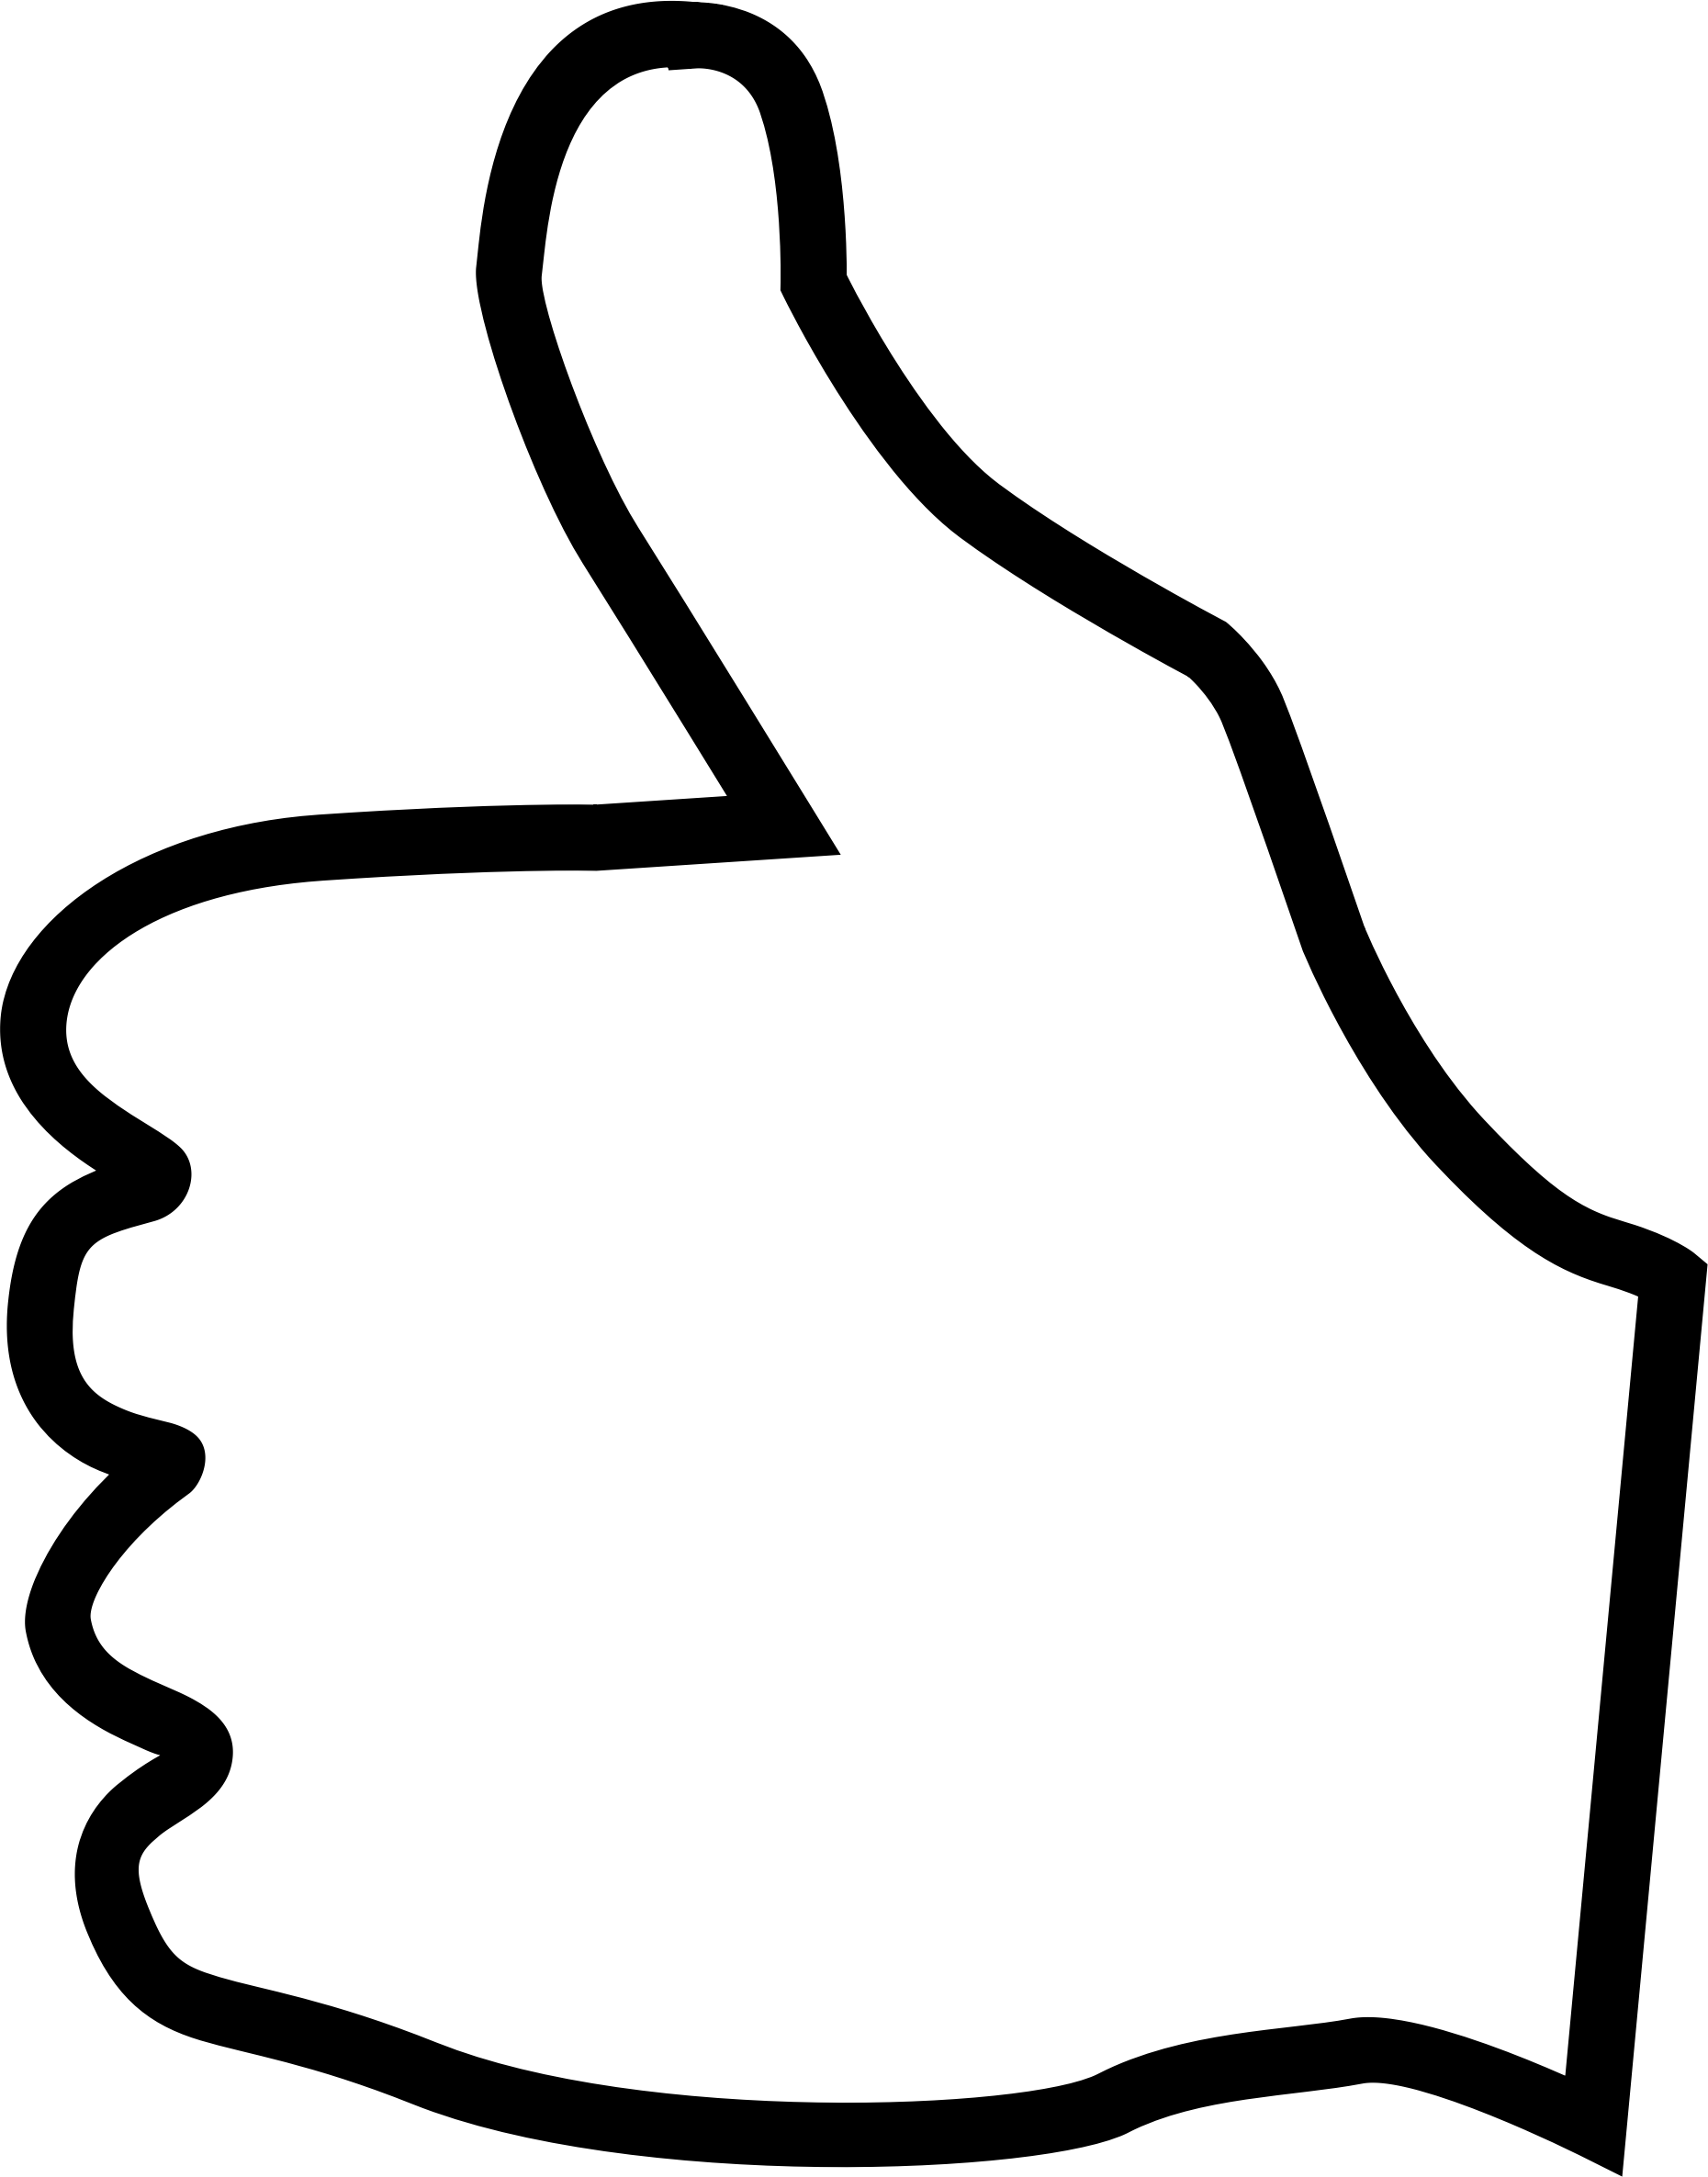 1860x2371 Smiley Face Clip Art Thumbs Up Free Clipart Images 3